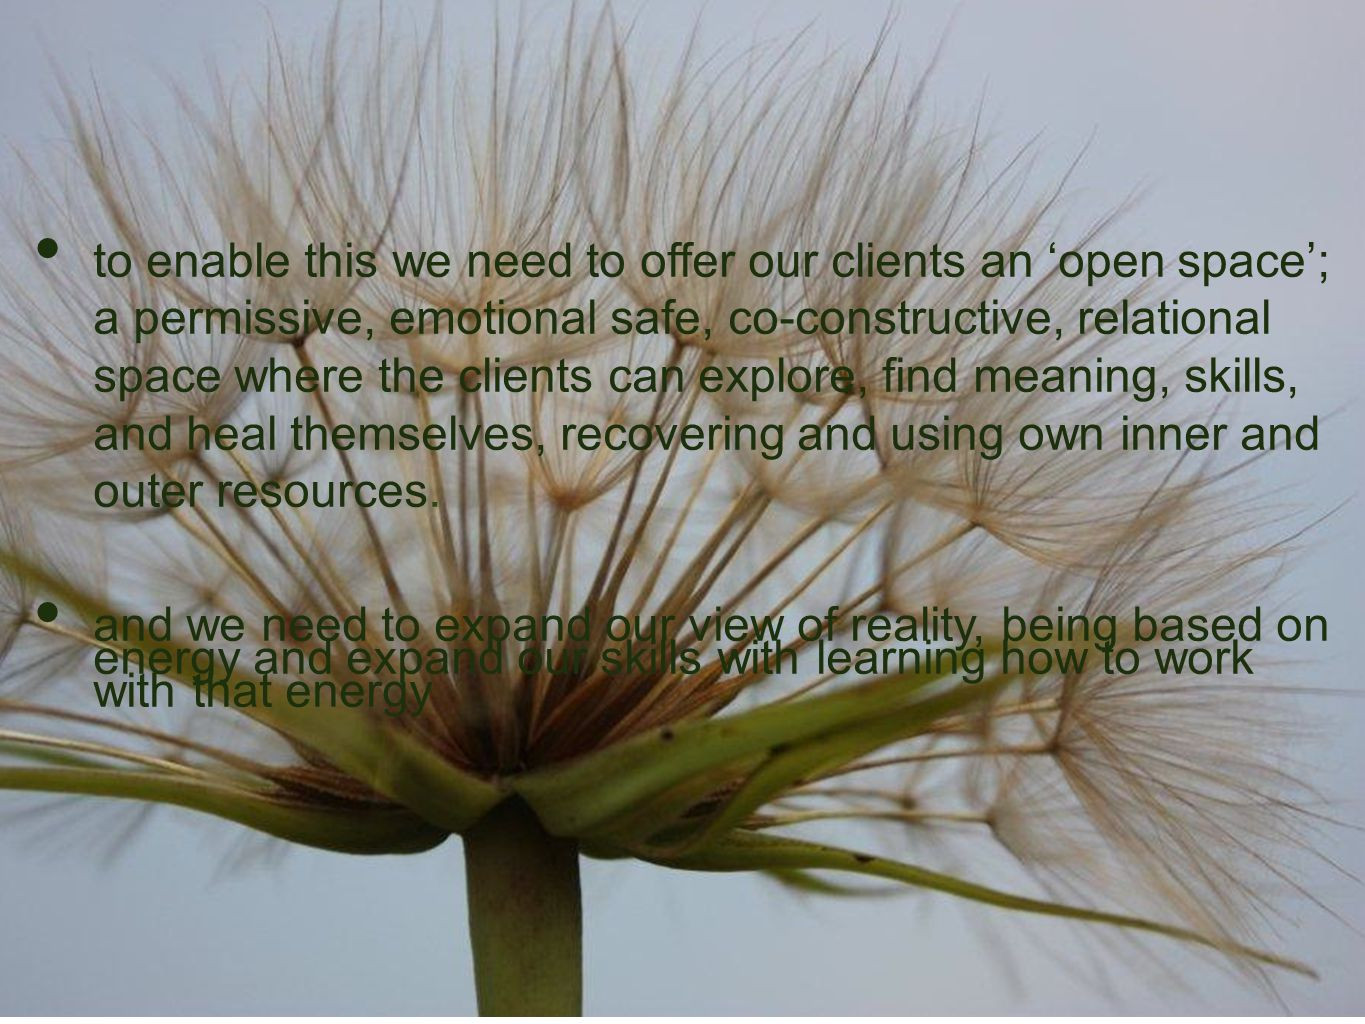 to enable this we need to offer our clients an 'open space'; a permissive, emotional safe, co-constructive, relational space where the clients can exp